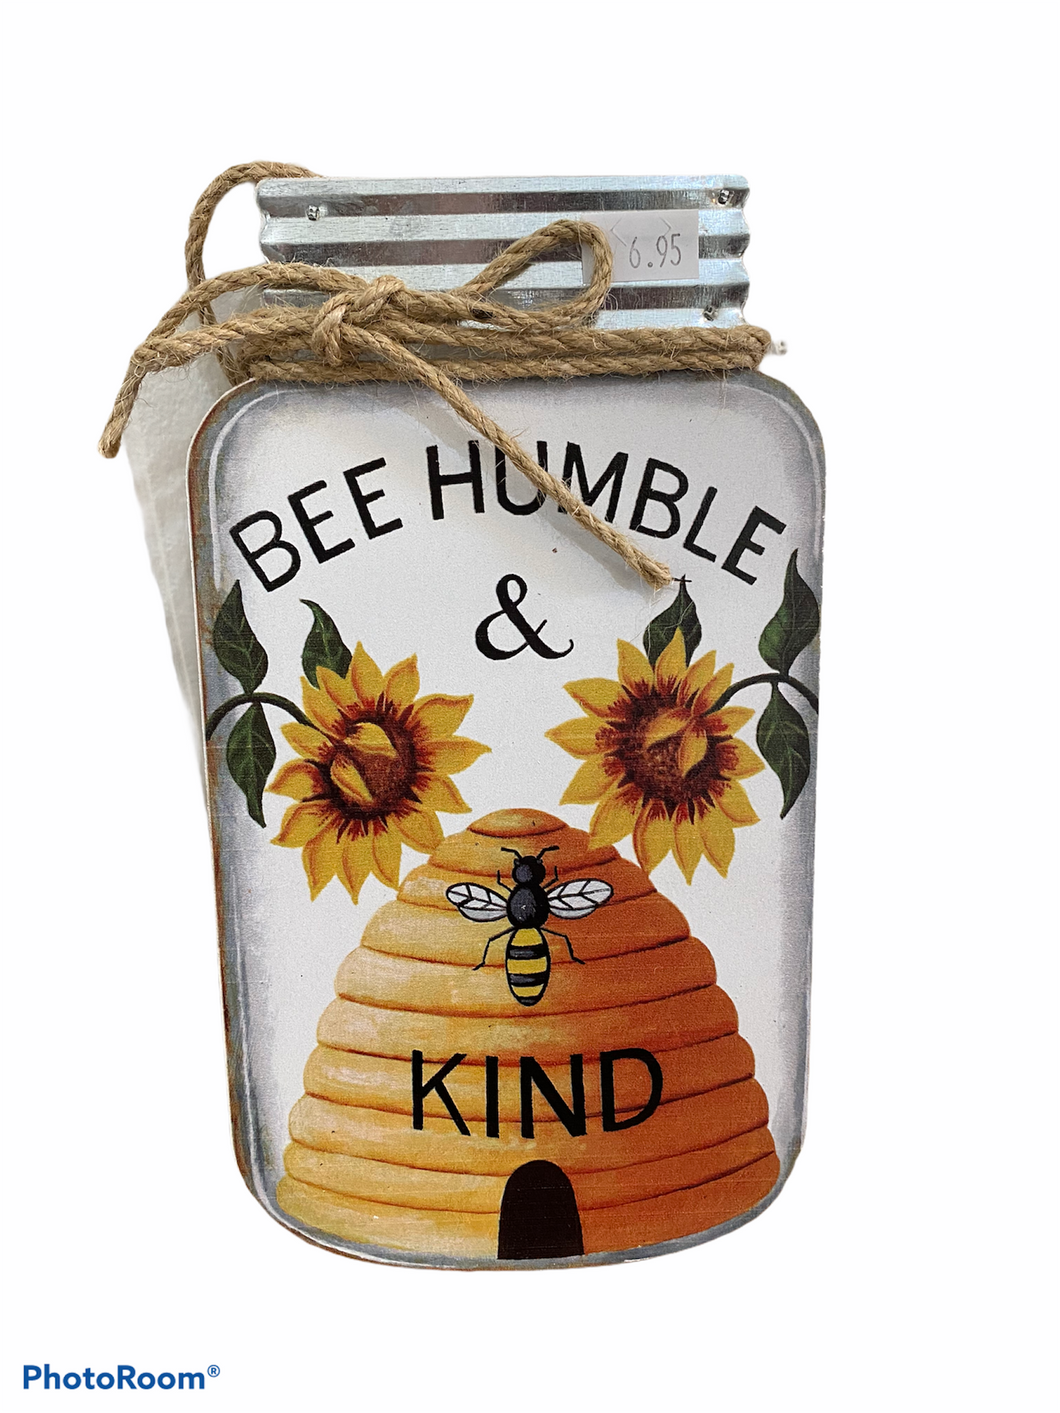 Bee Humble Sunflower Jar Sign Home Decor